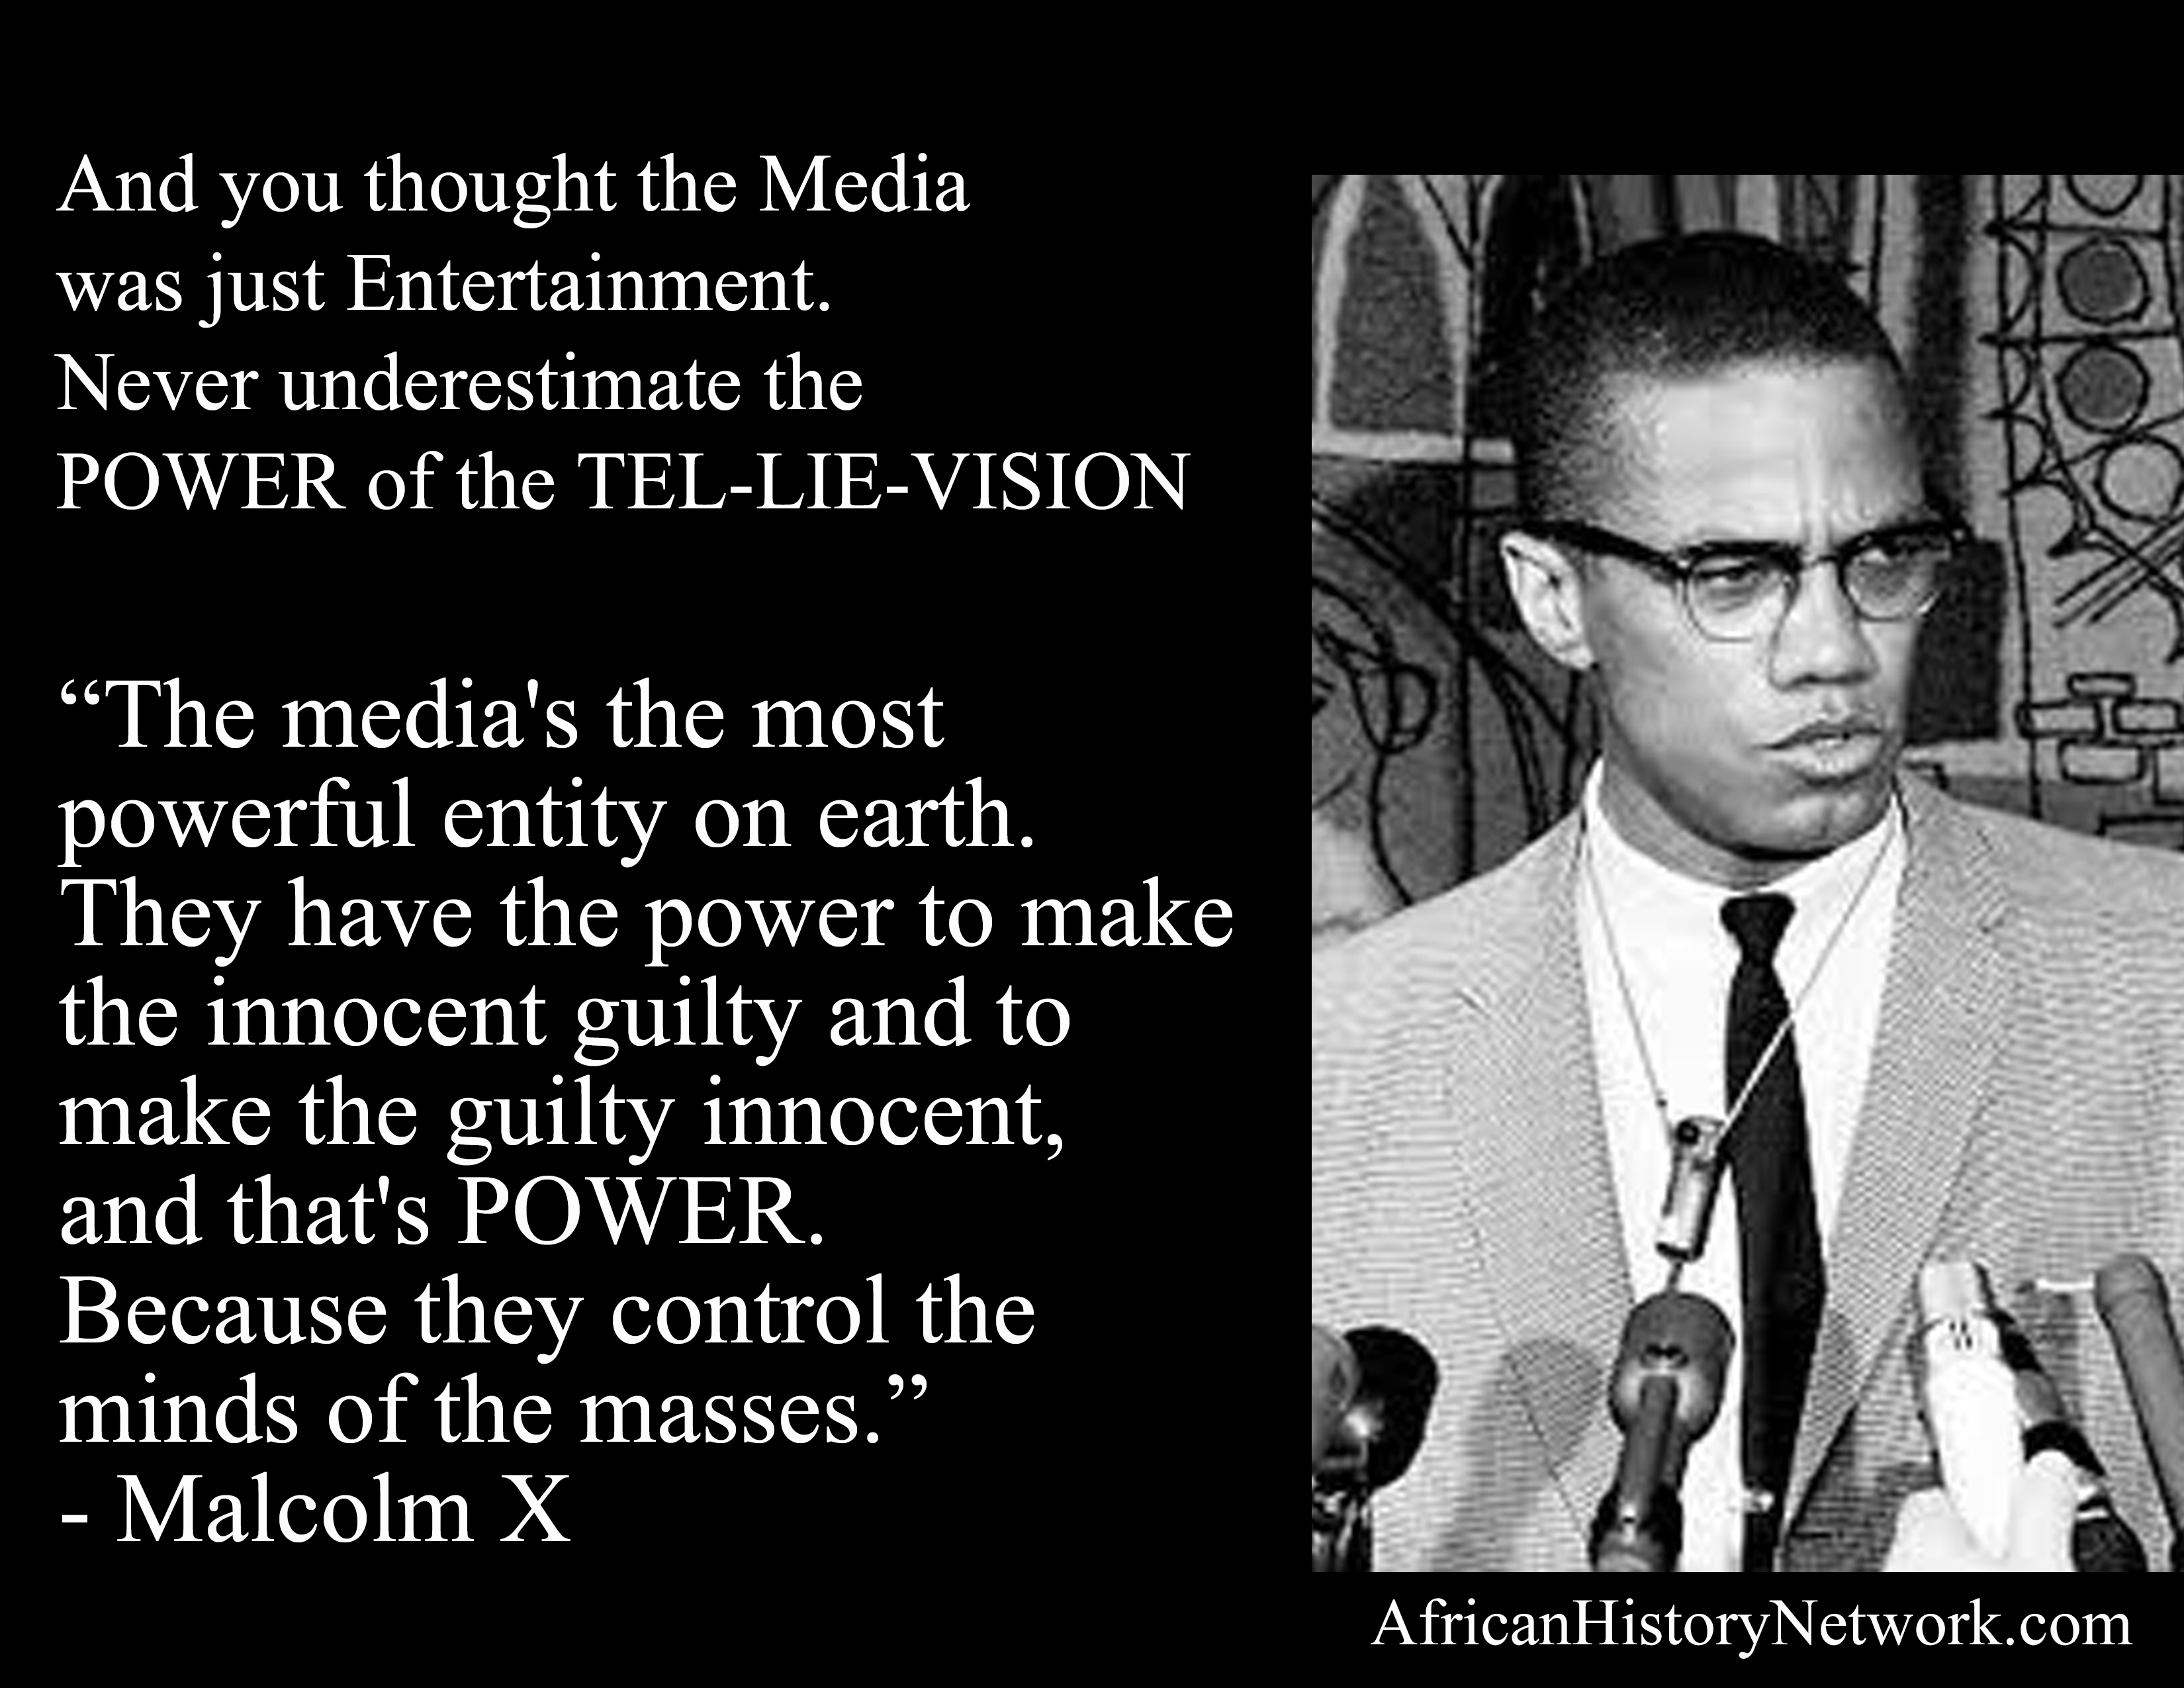 Malcolm_X_-_Media_is_Powerful